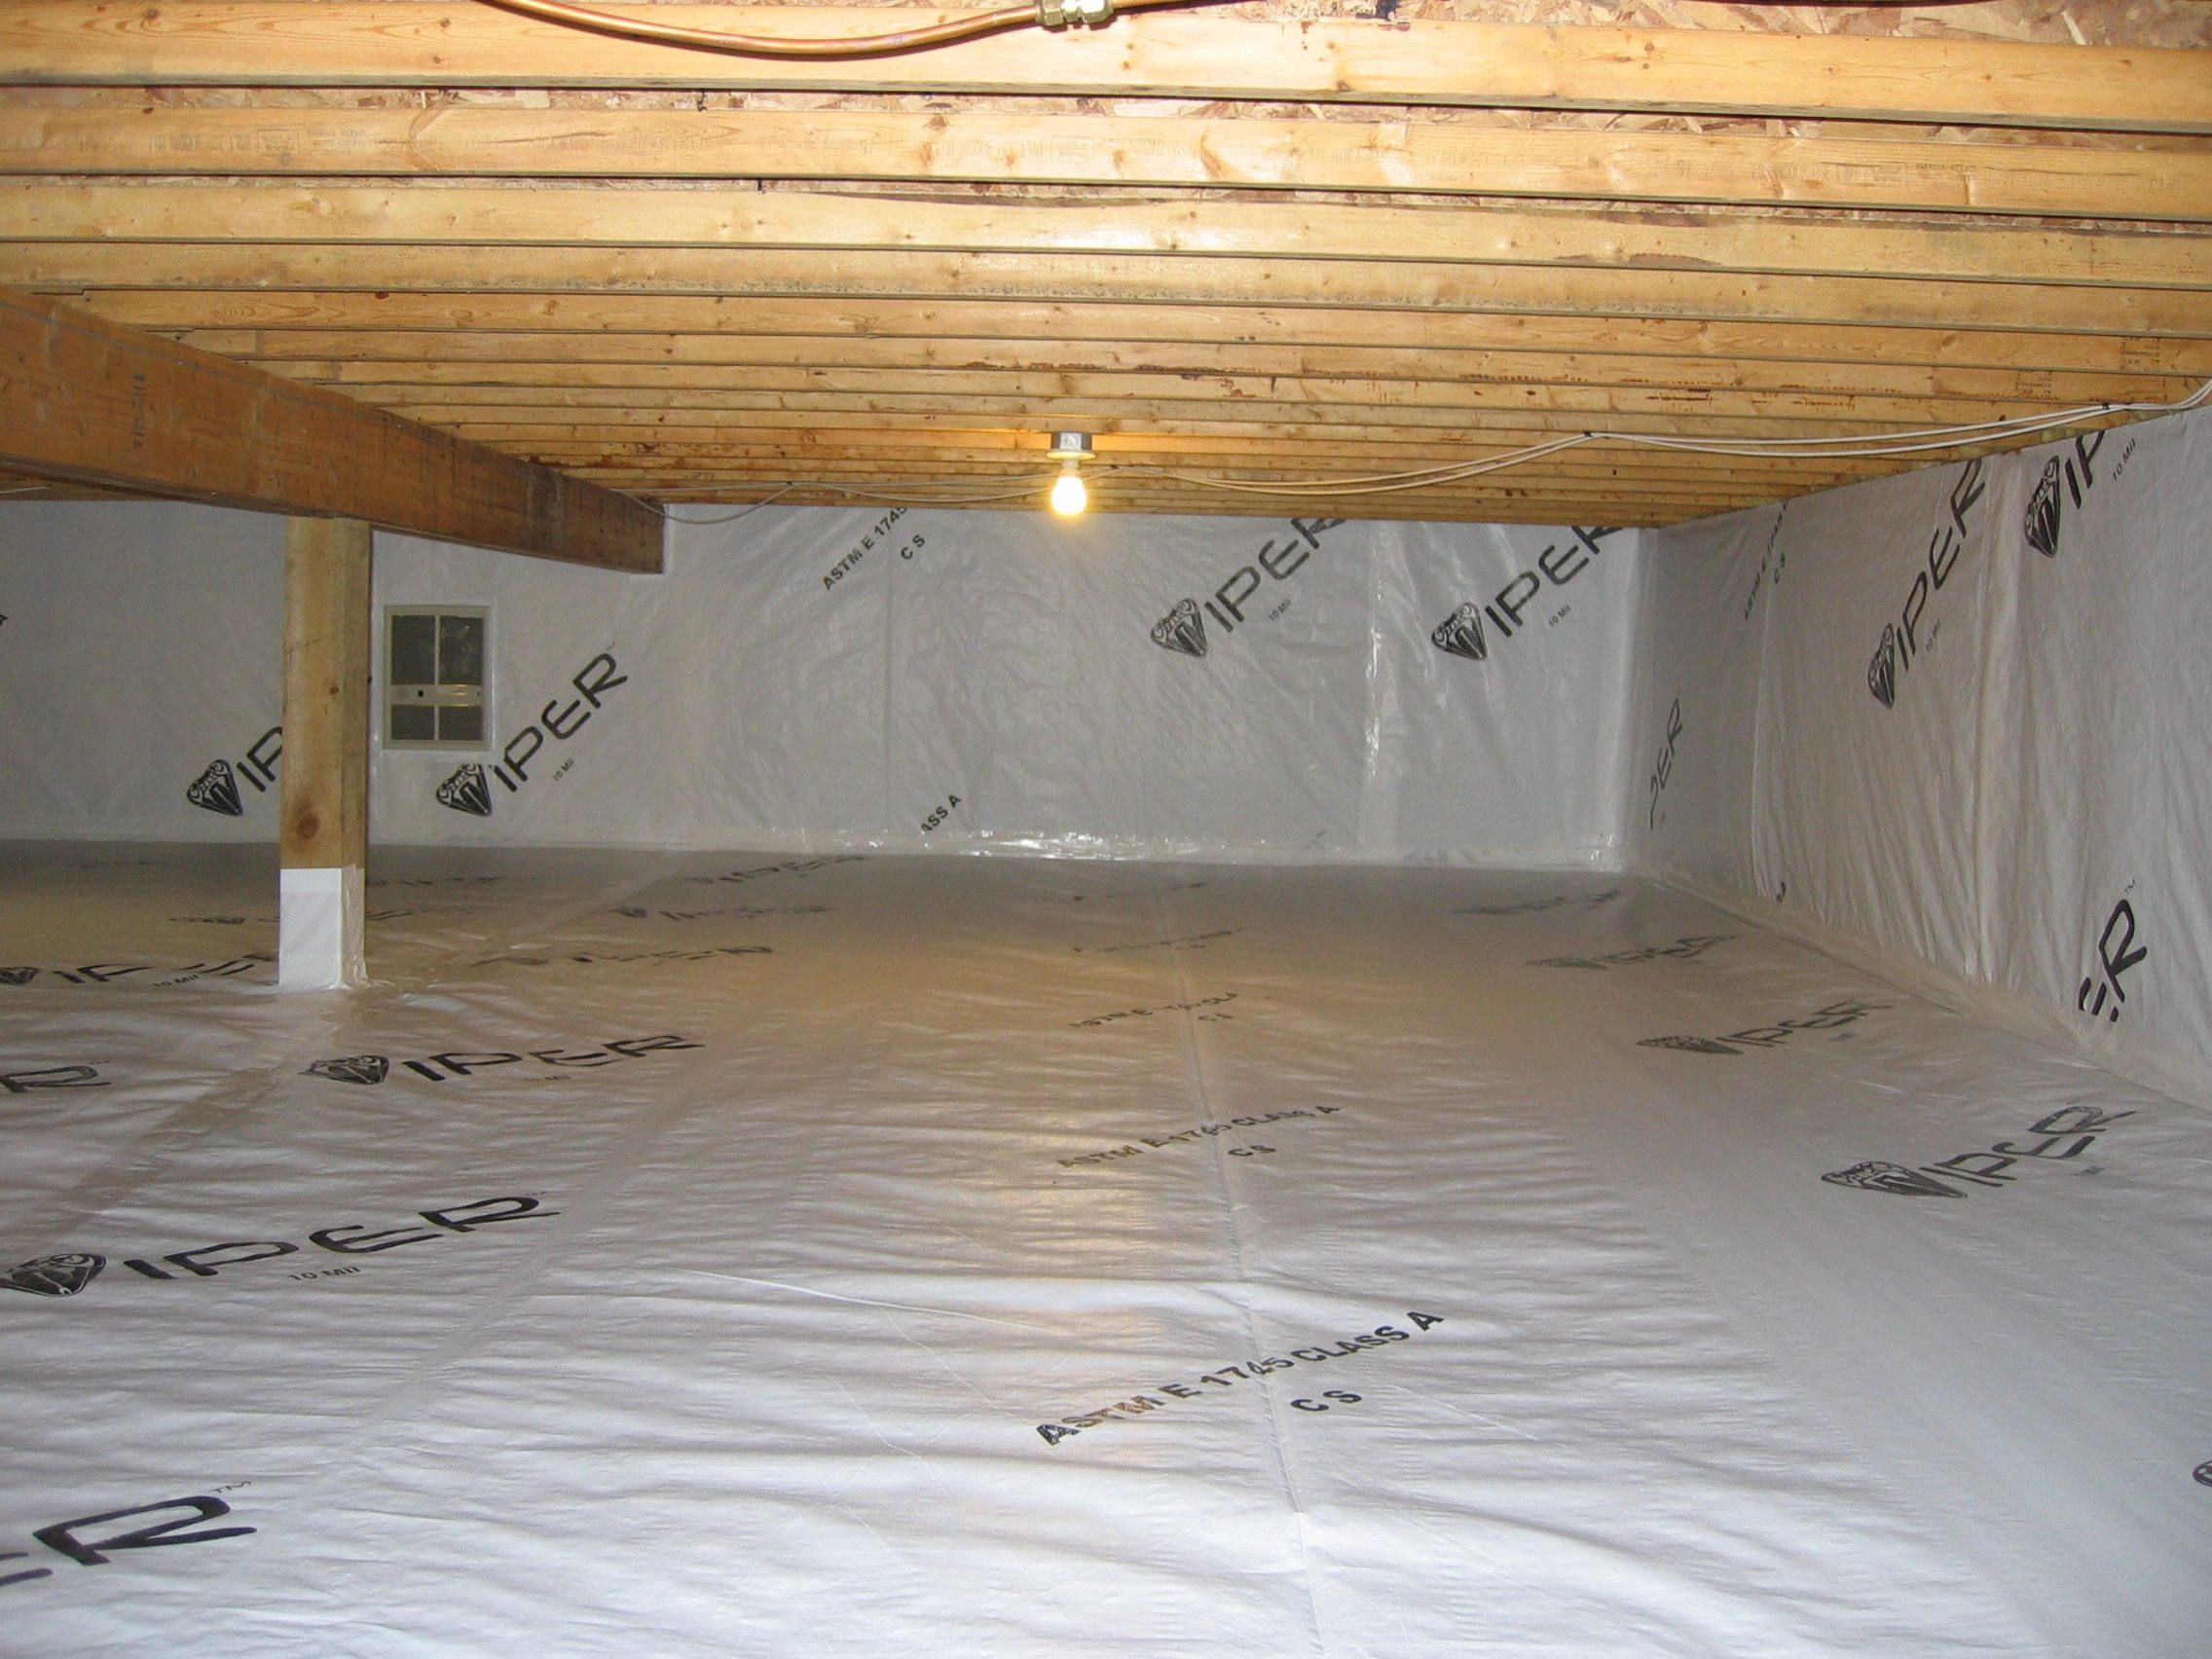 Viper cs is a vapor barrier designed specifically for Crawl space flooring